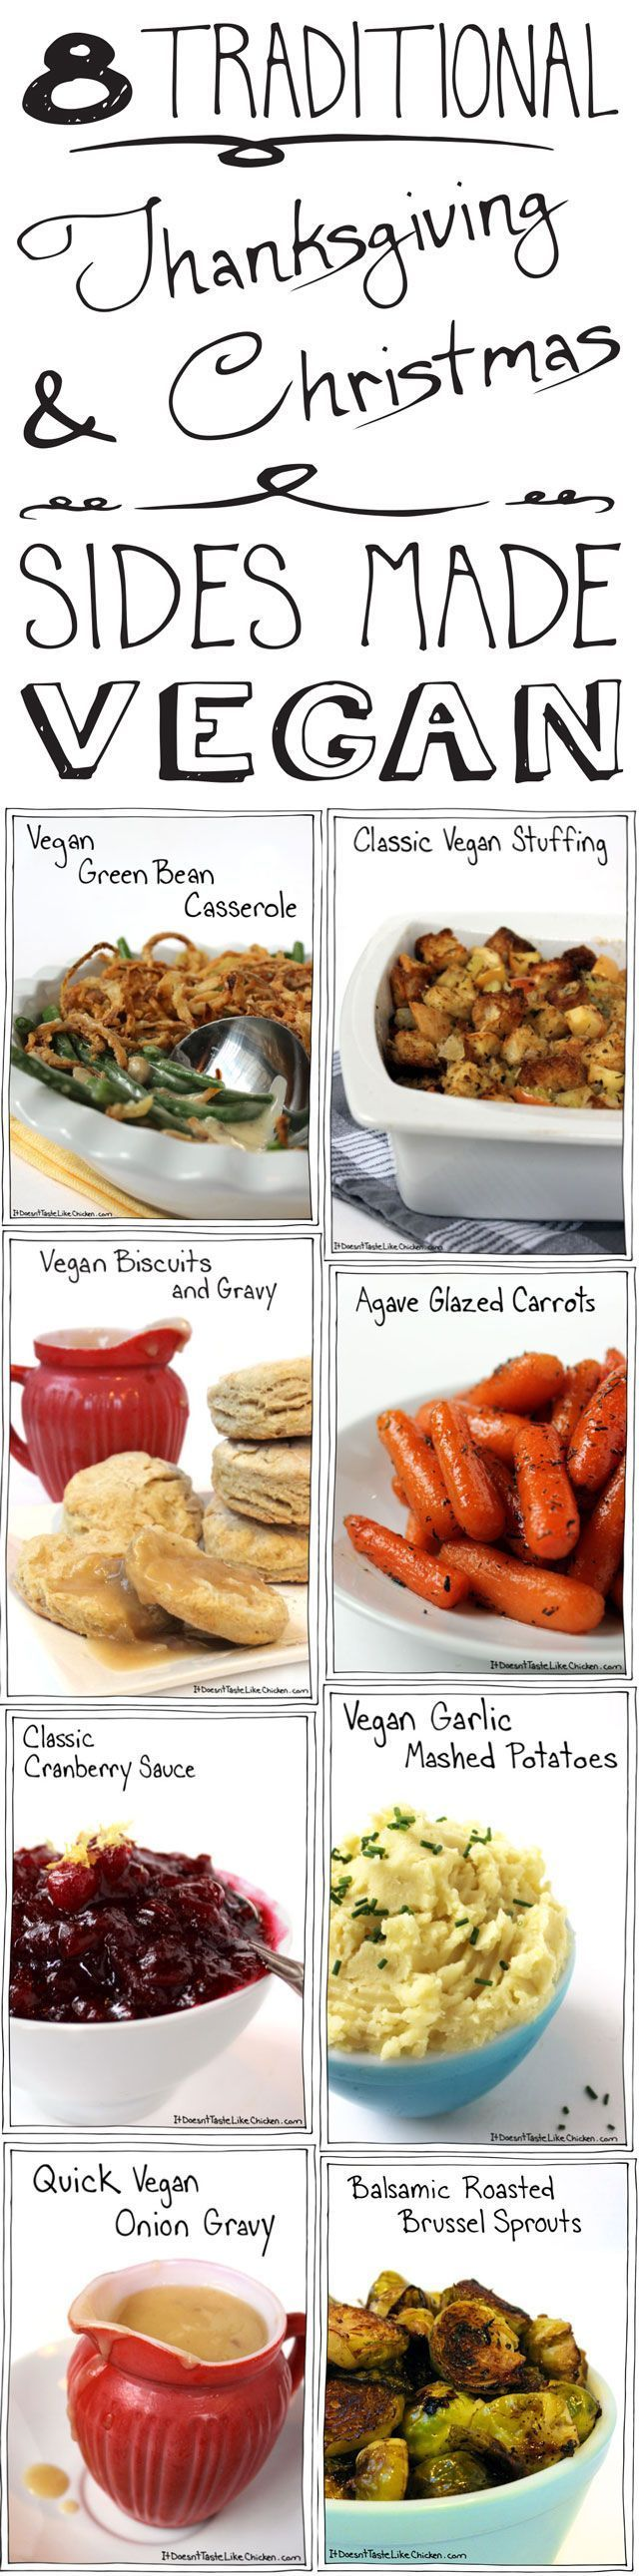 8 Traditional Thanksgiving & Christmas Sides Made Vegan. Delicious enough for everyone to enjoy